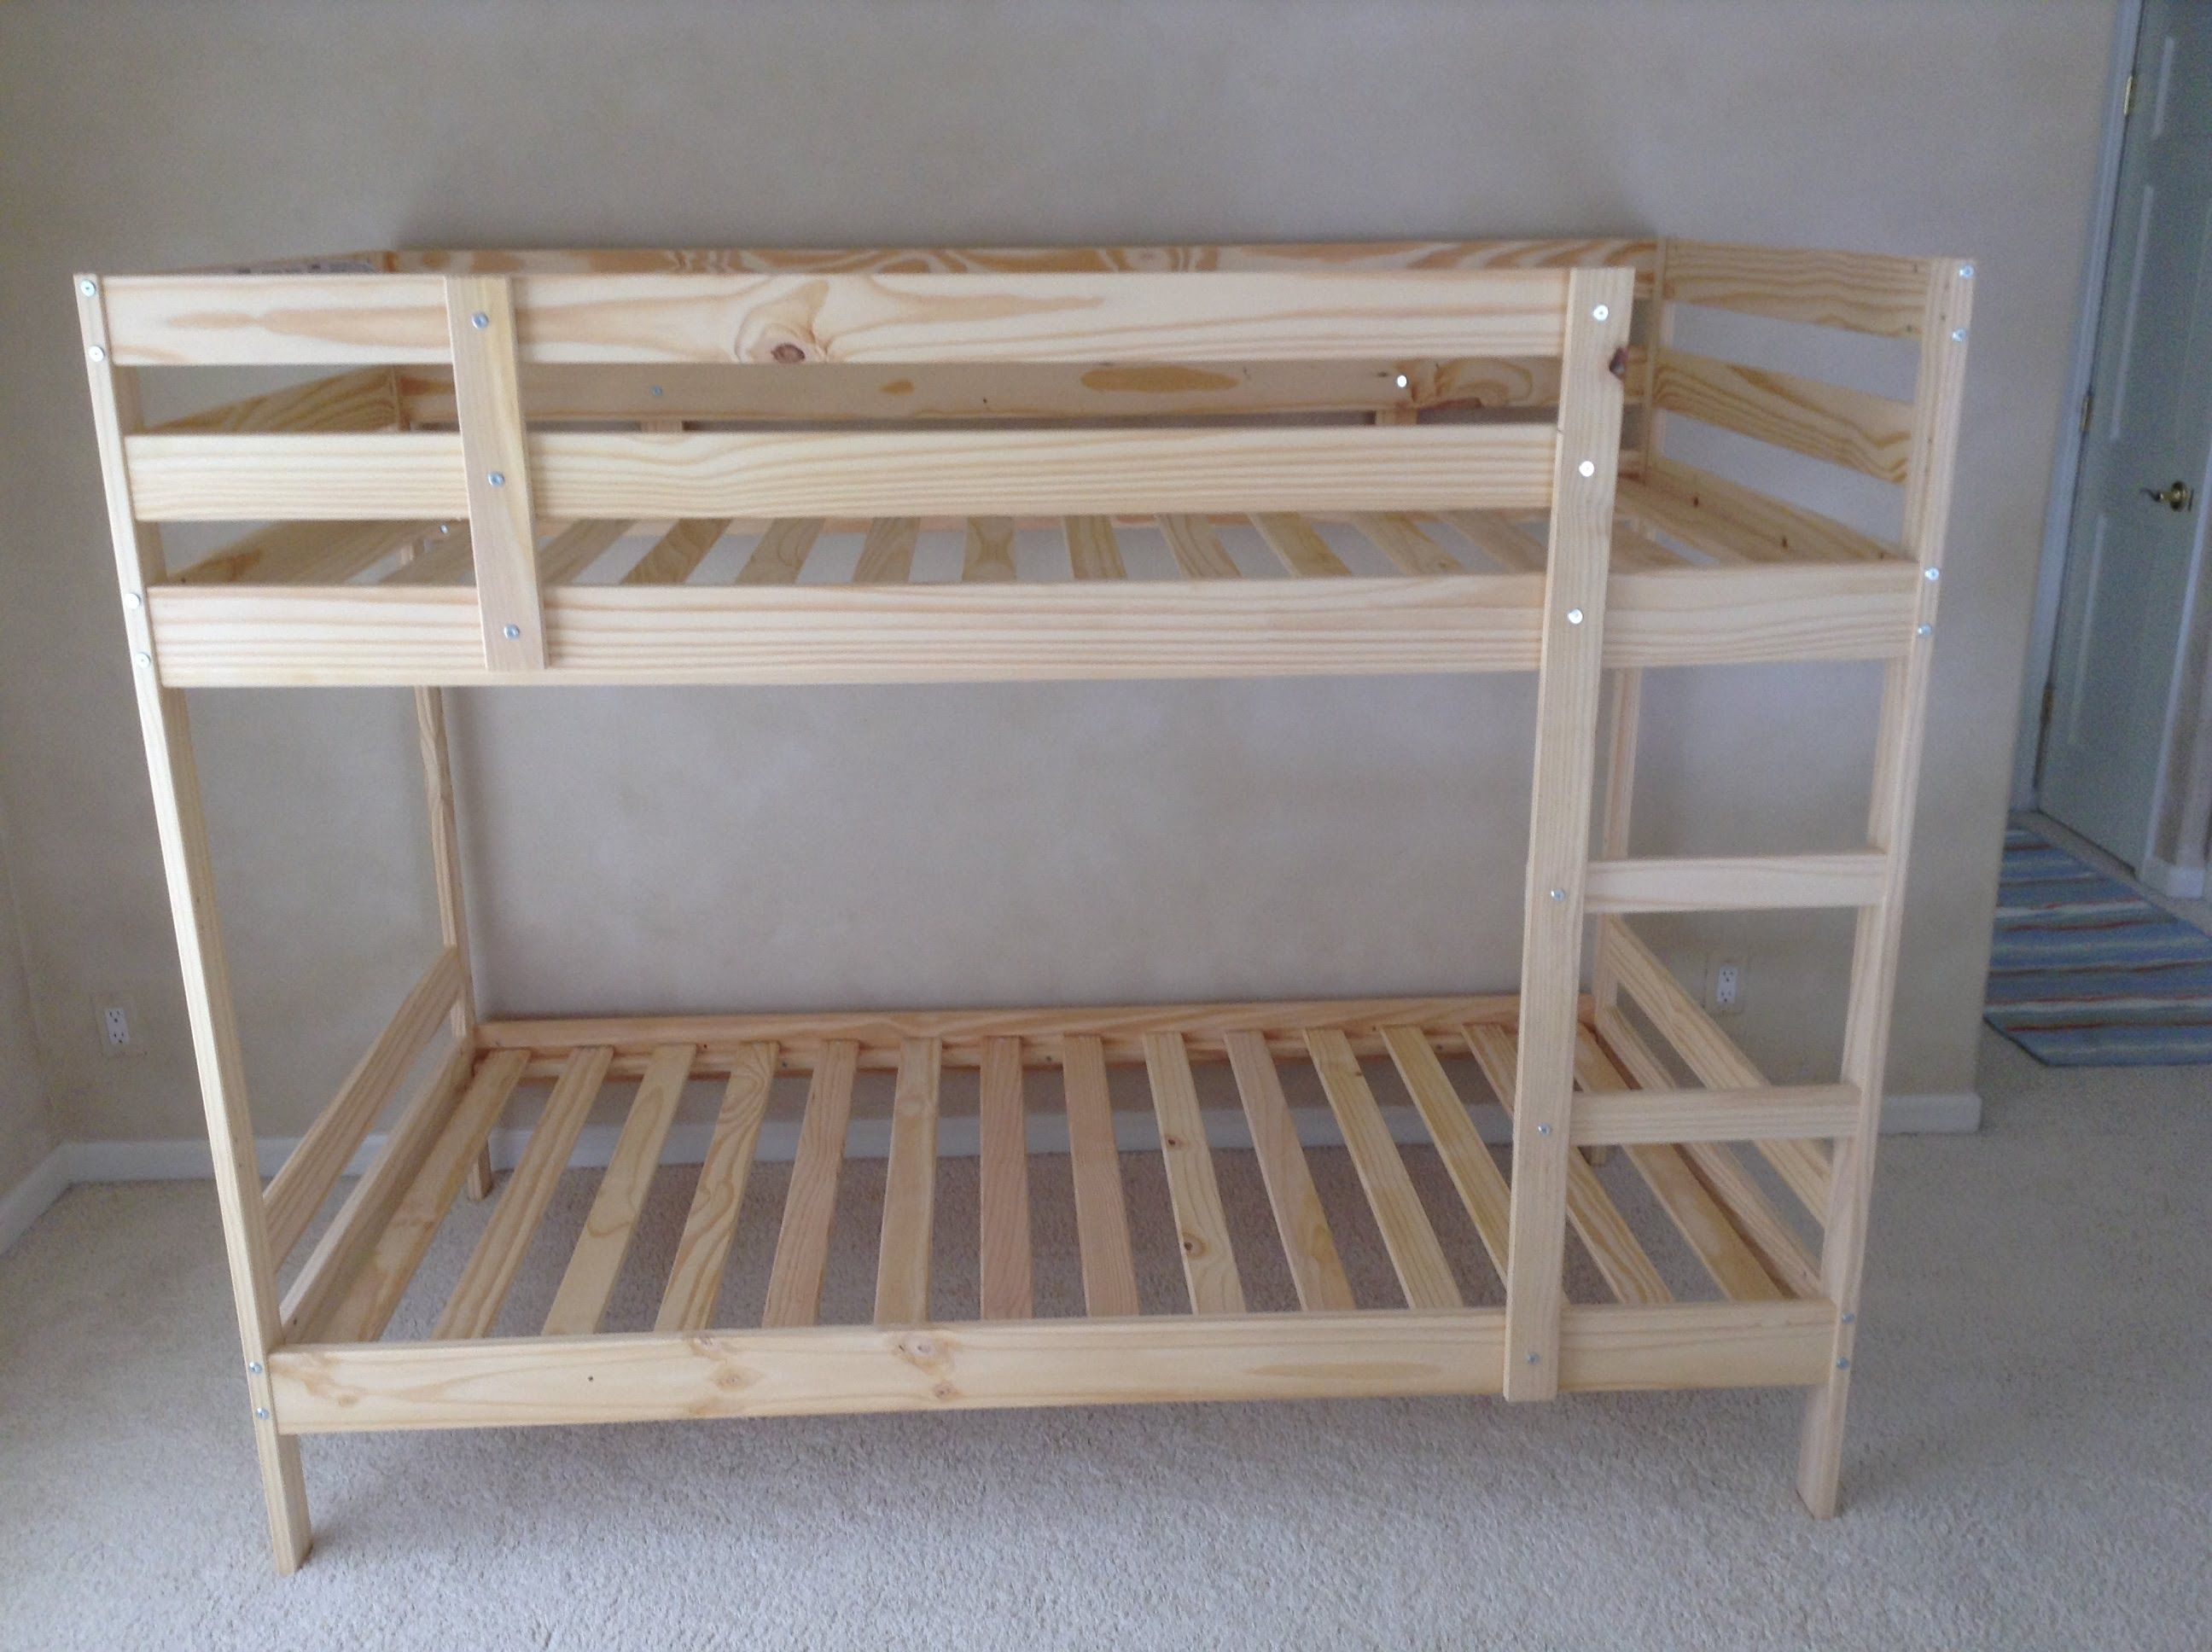 Assembly Of The Ikea Mydal Wooden Bunk Bed Kit This Can Be Done By